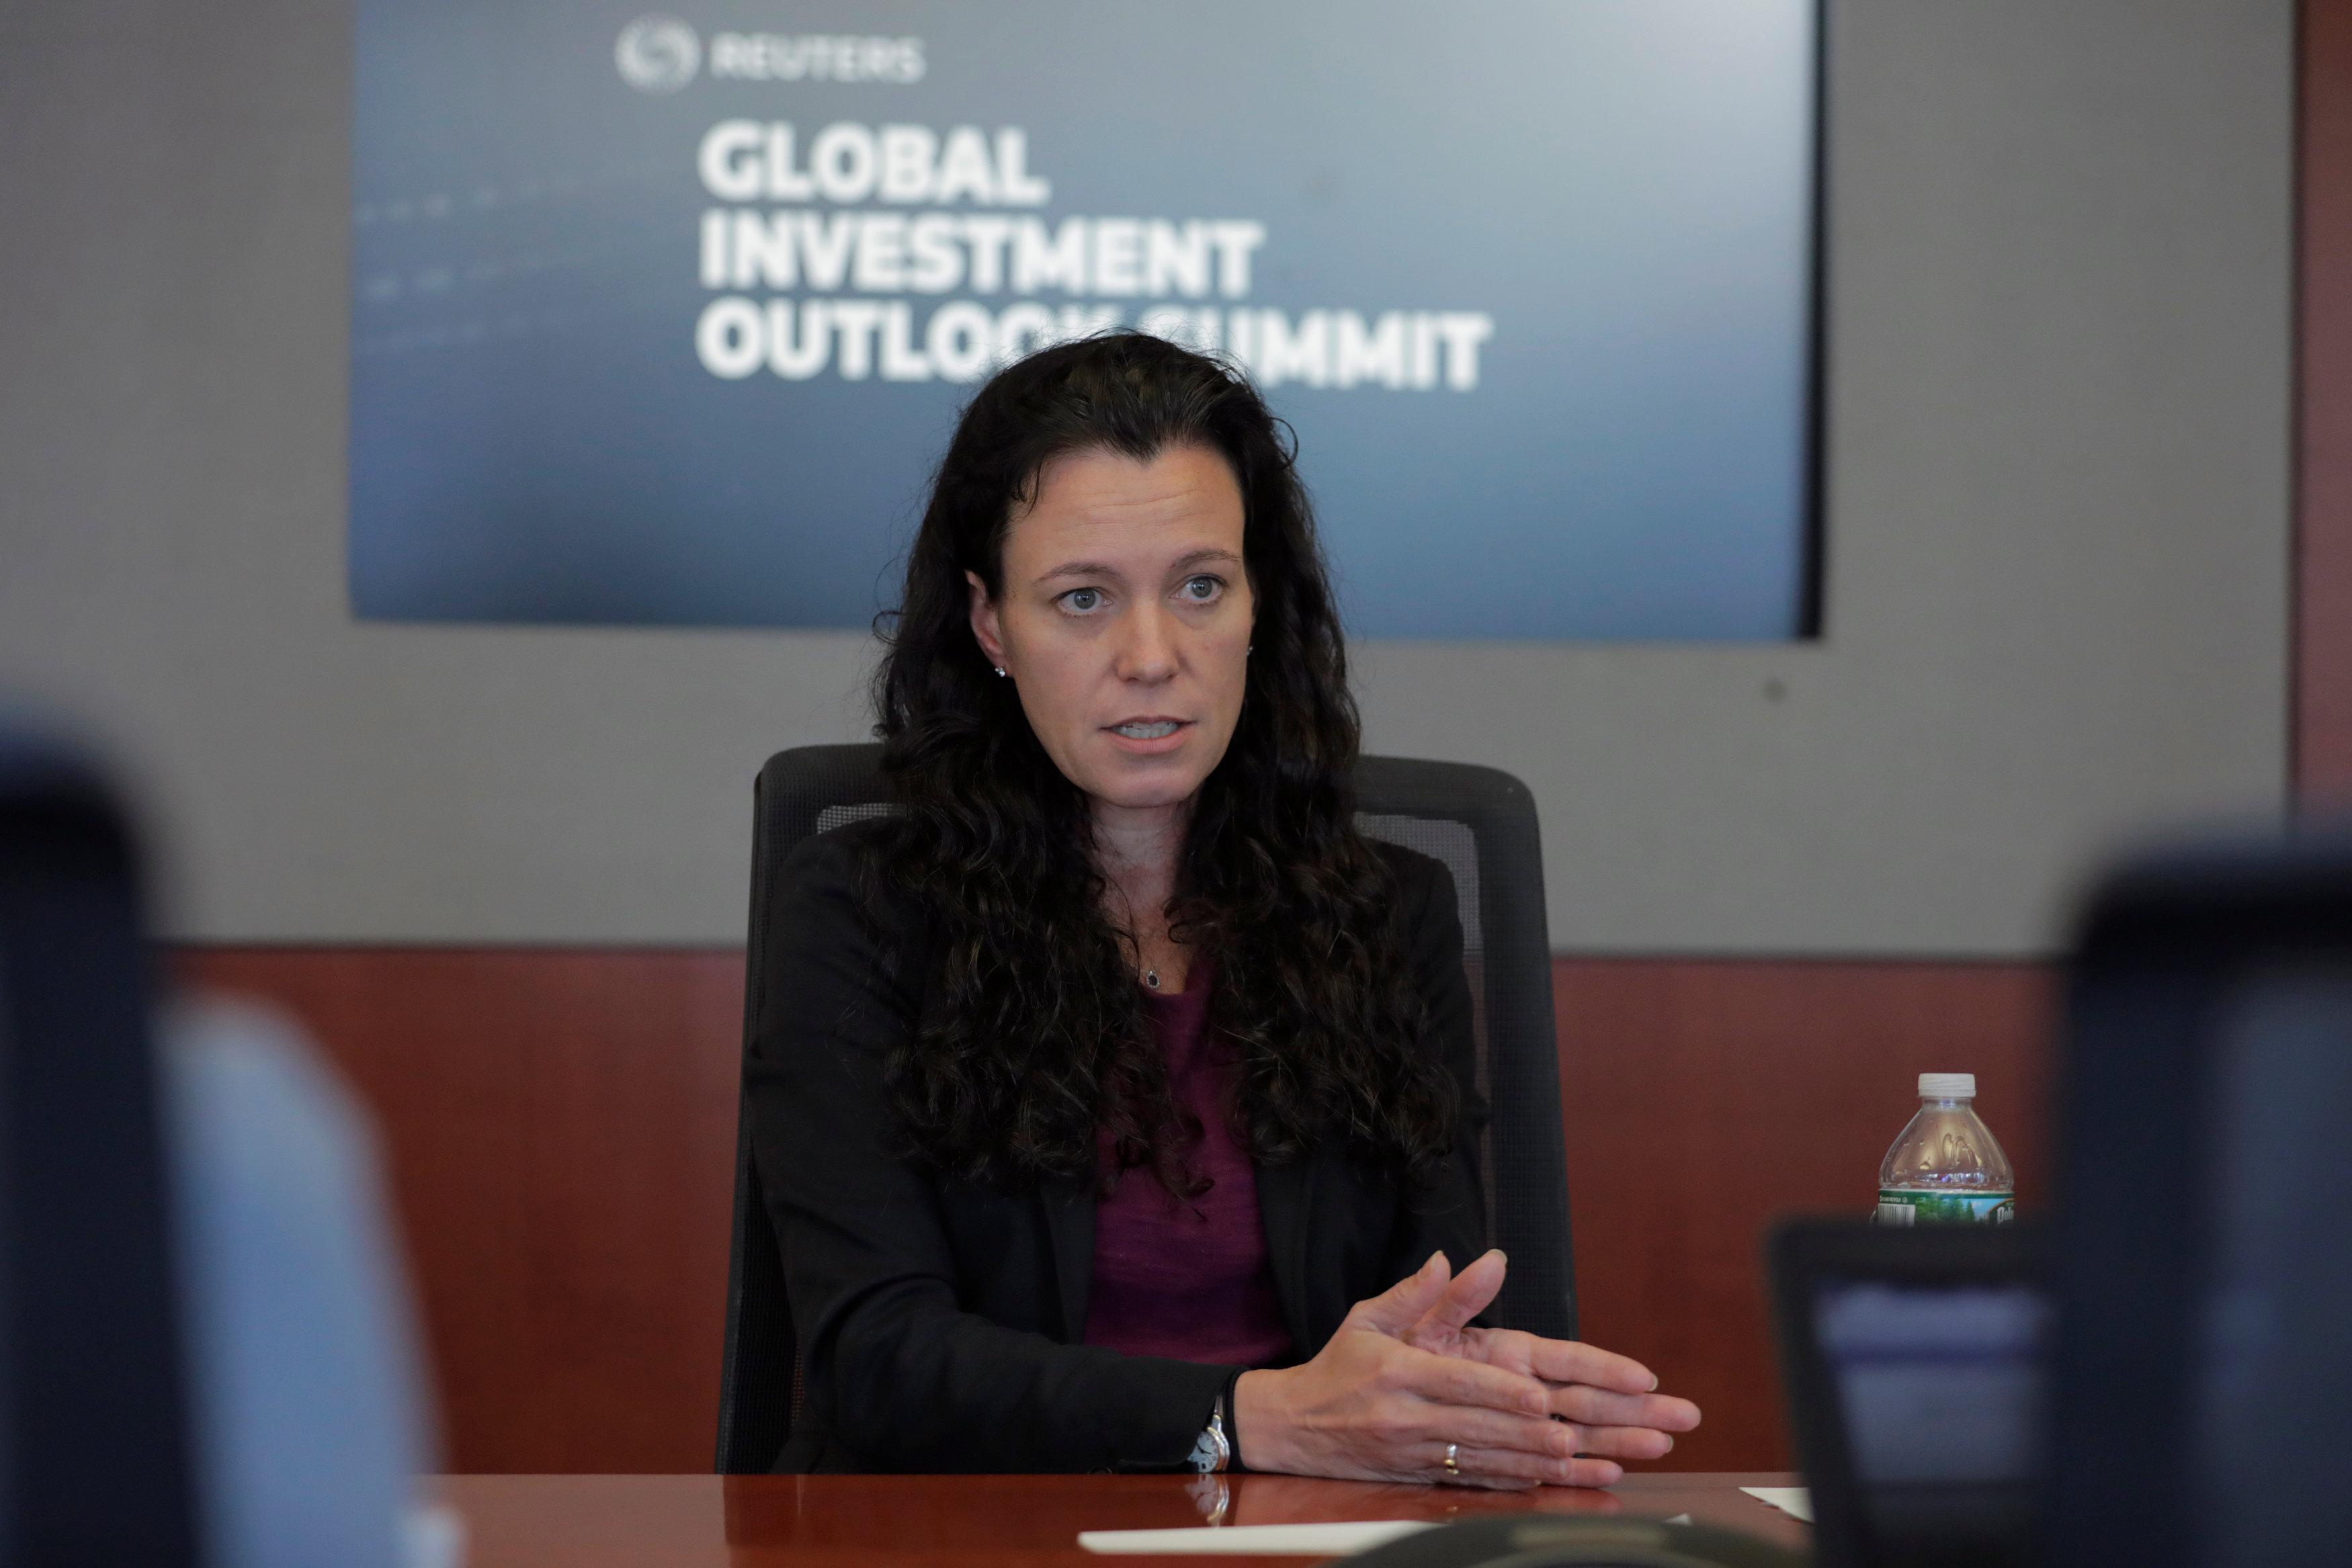 Kera Van Valen, managing director and portfolio manager at Epoch Investment Partners, speaks during the Reuters Global Investment Outlook Summit in New York, U.S., November 17, 2017.  Lucas Jackson